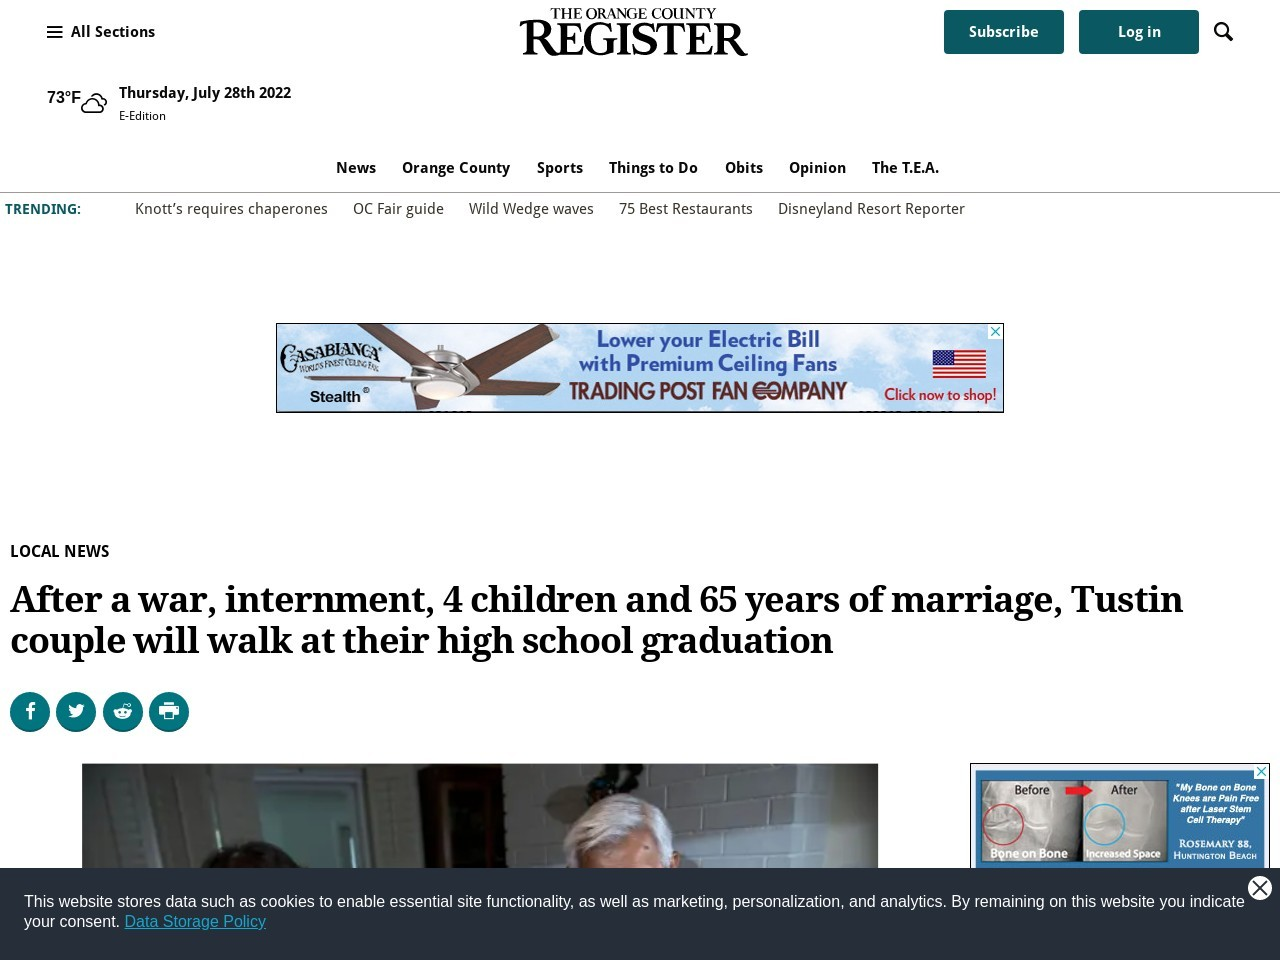 After a war, internment, 4 children and 65 years of marriage …